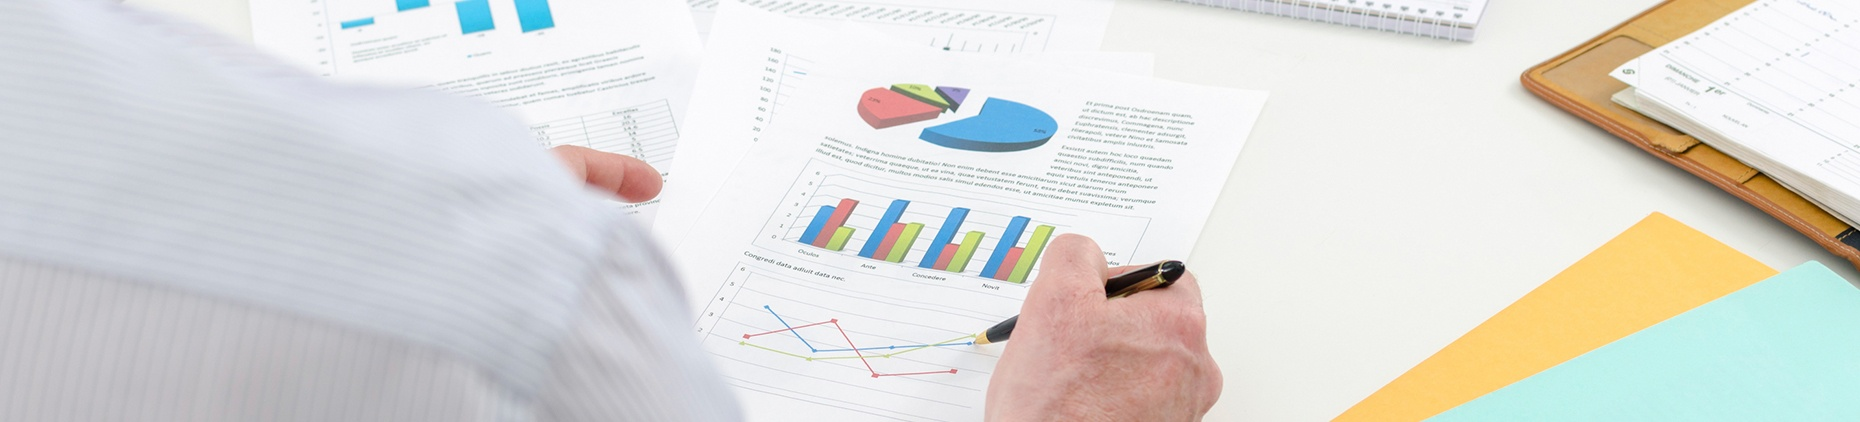 What Sales Metrics Should You Track? – The Essential List [PDF]